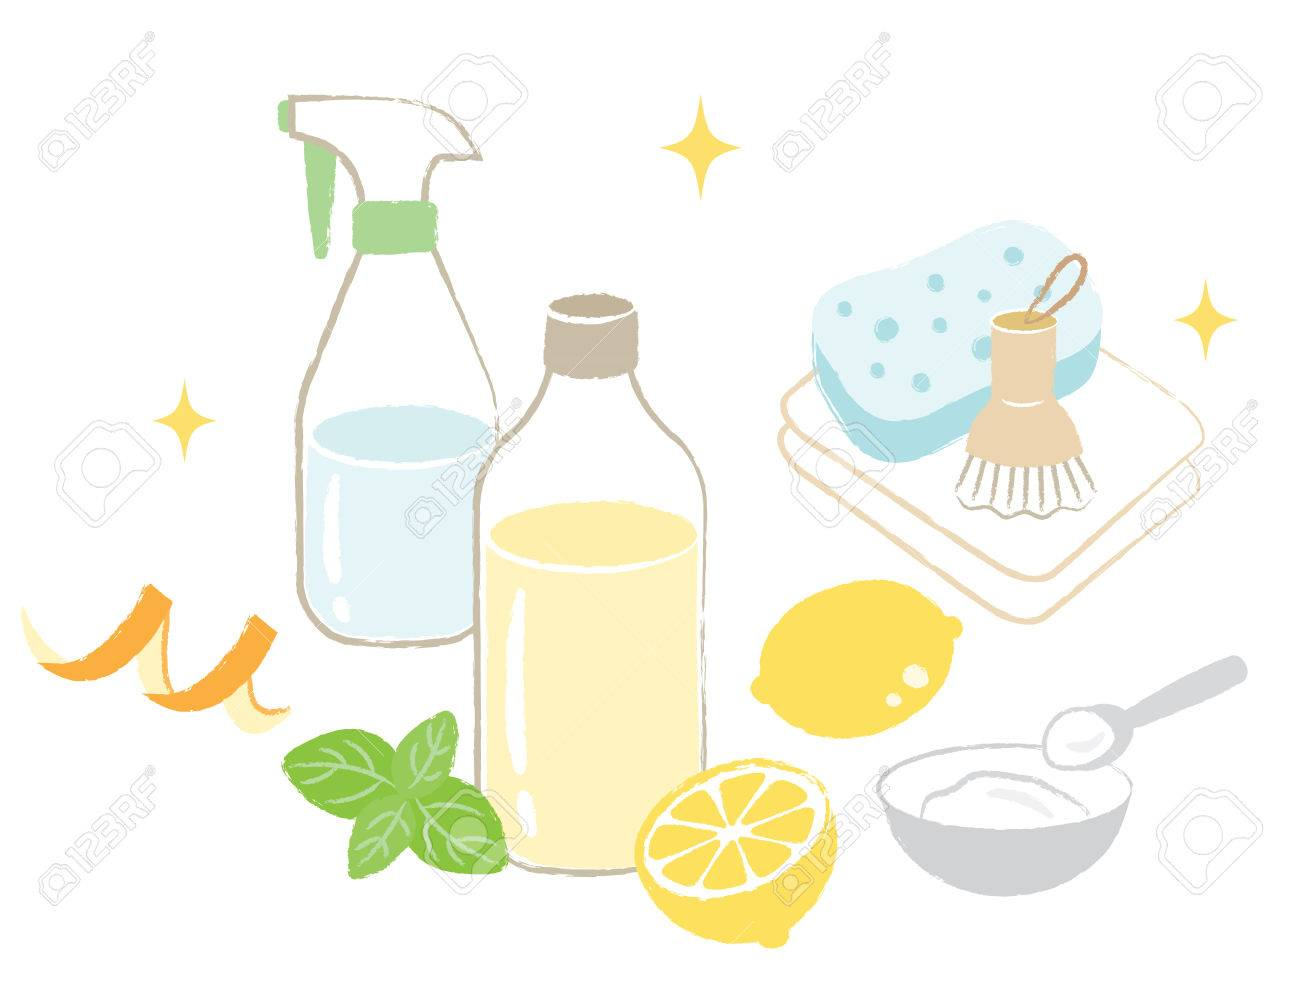 natural cleaning - 64378967